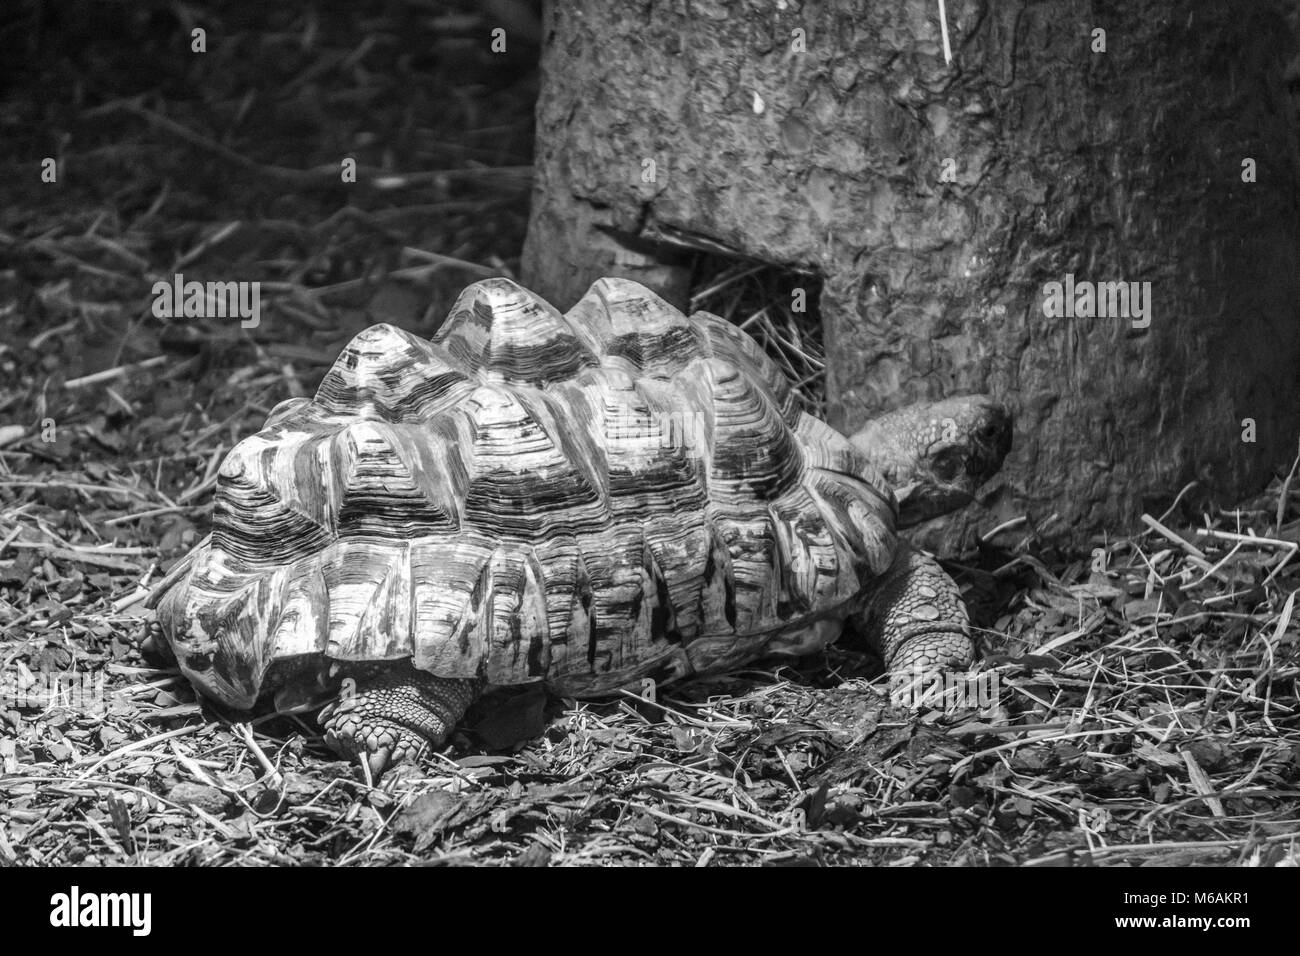 African spurred tortoise in black and white - Stock Image